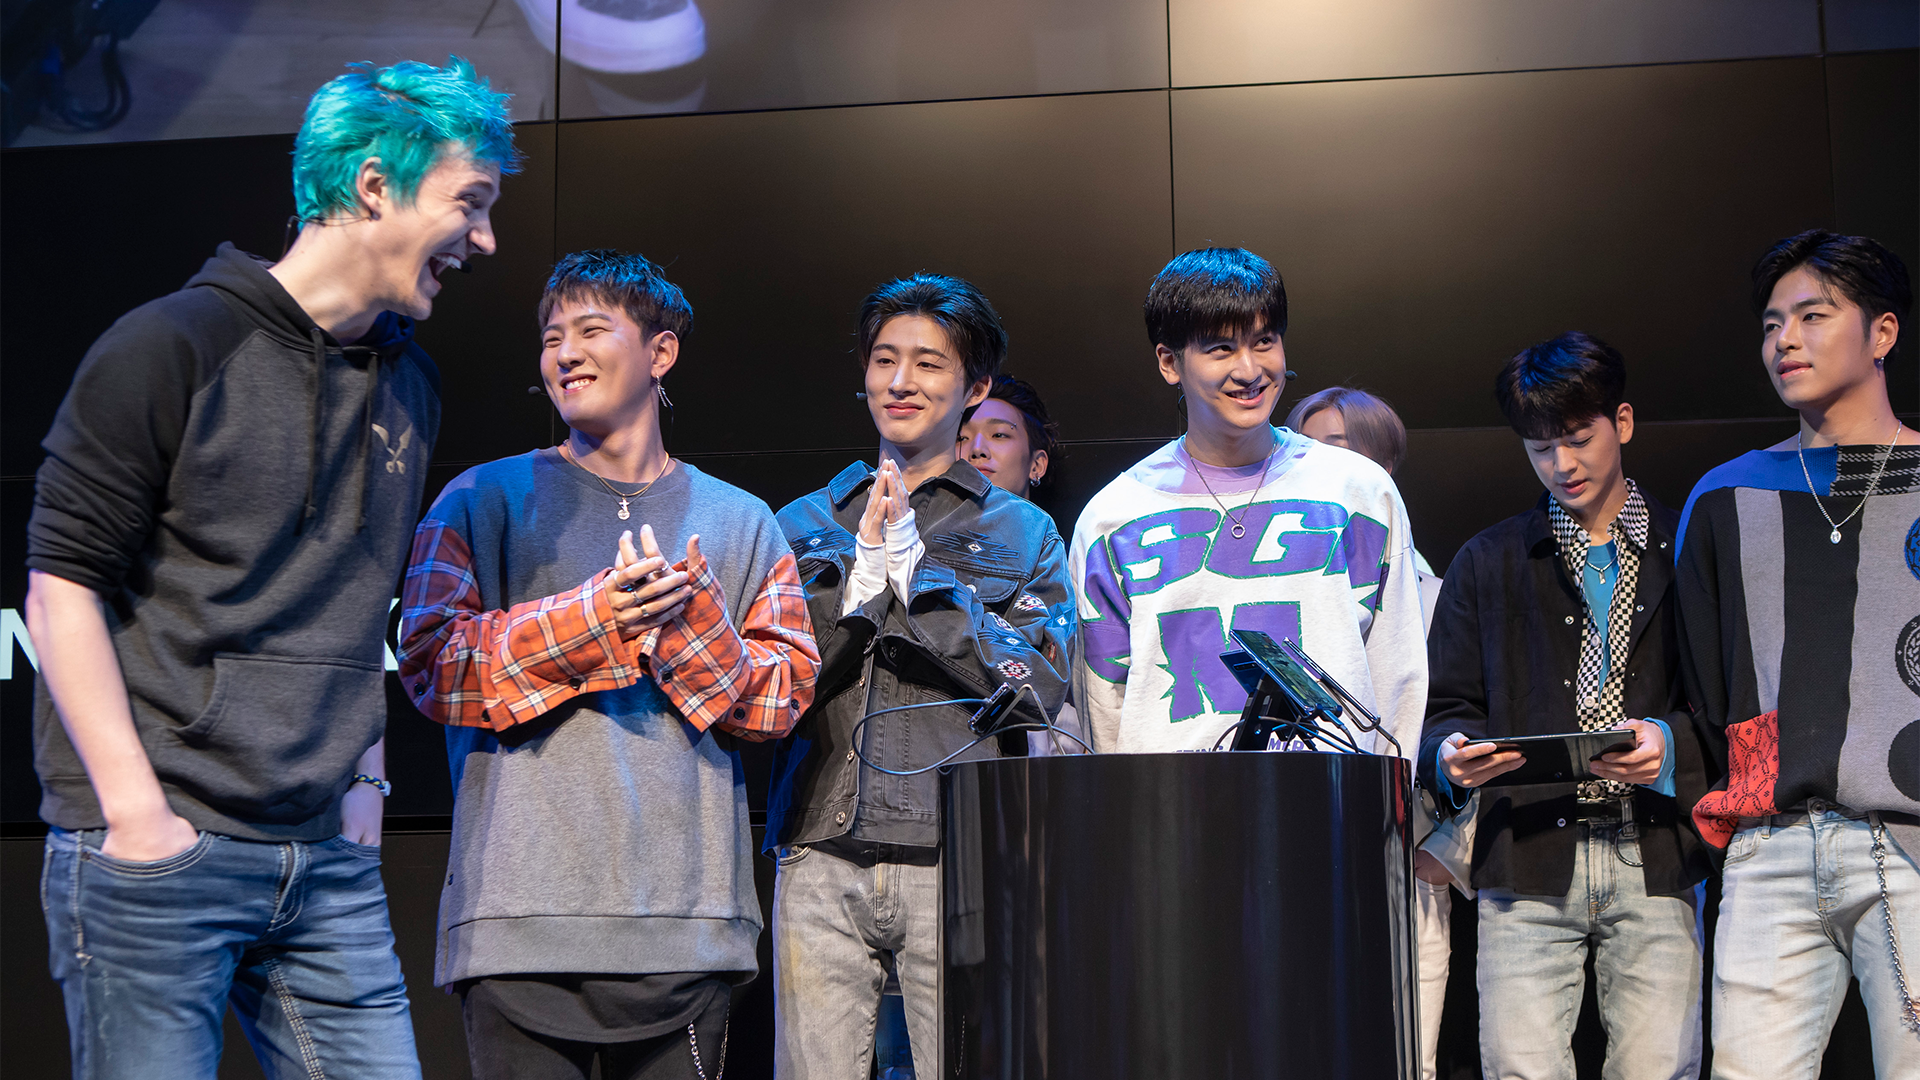 Samsung presents Level Up with Ninja and iKON - Super League